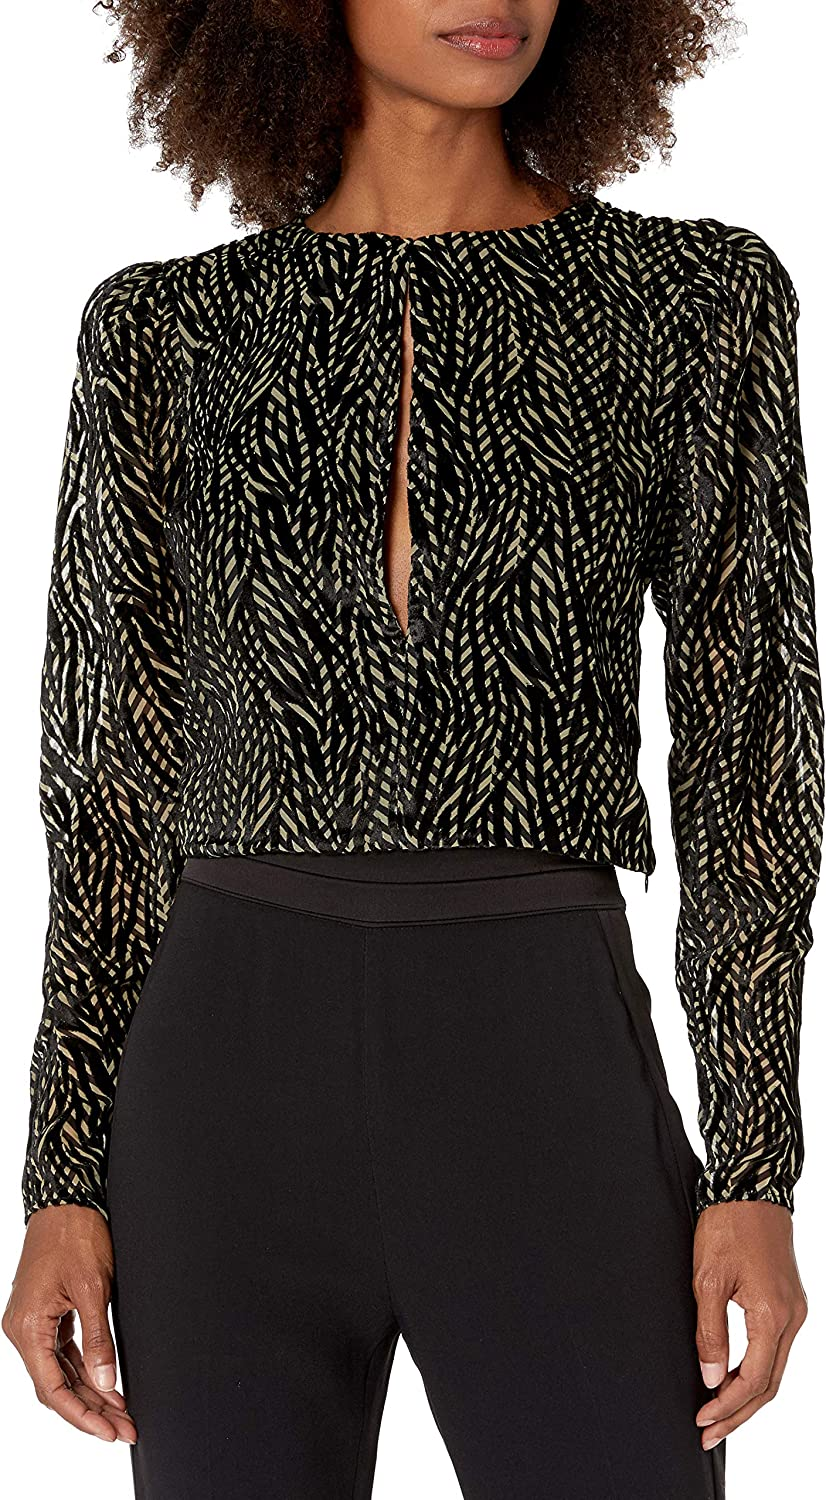 House of Harlow 1960 Price reduction Women's Don't miss the campaign Top Gilda